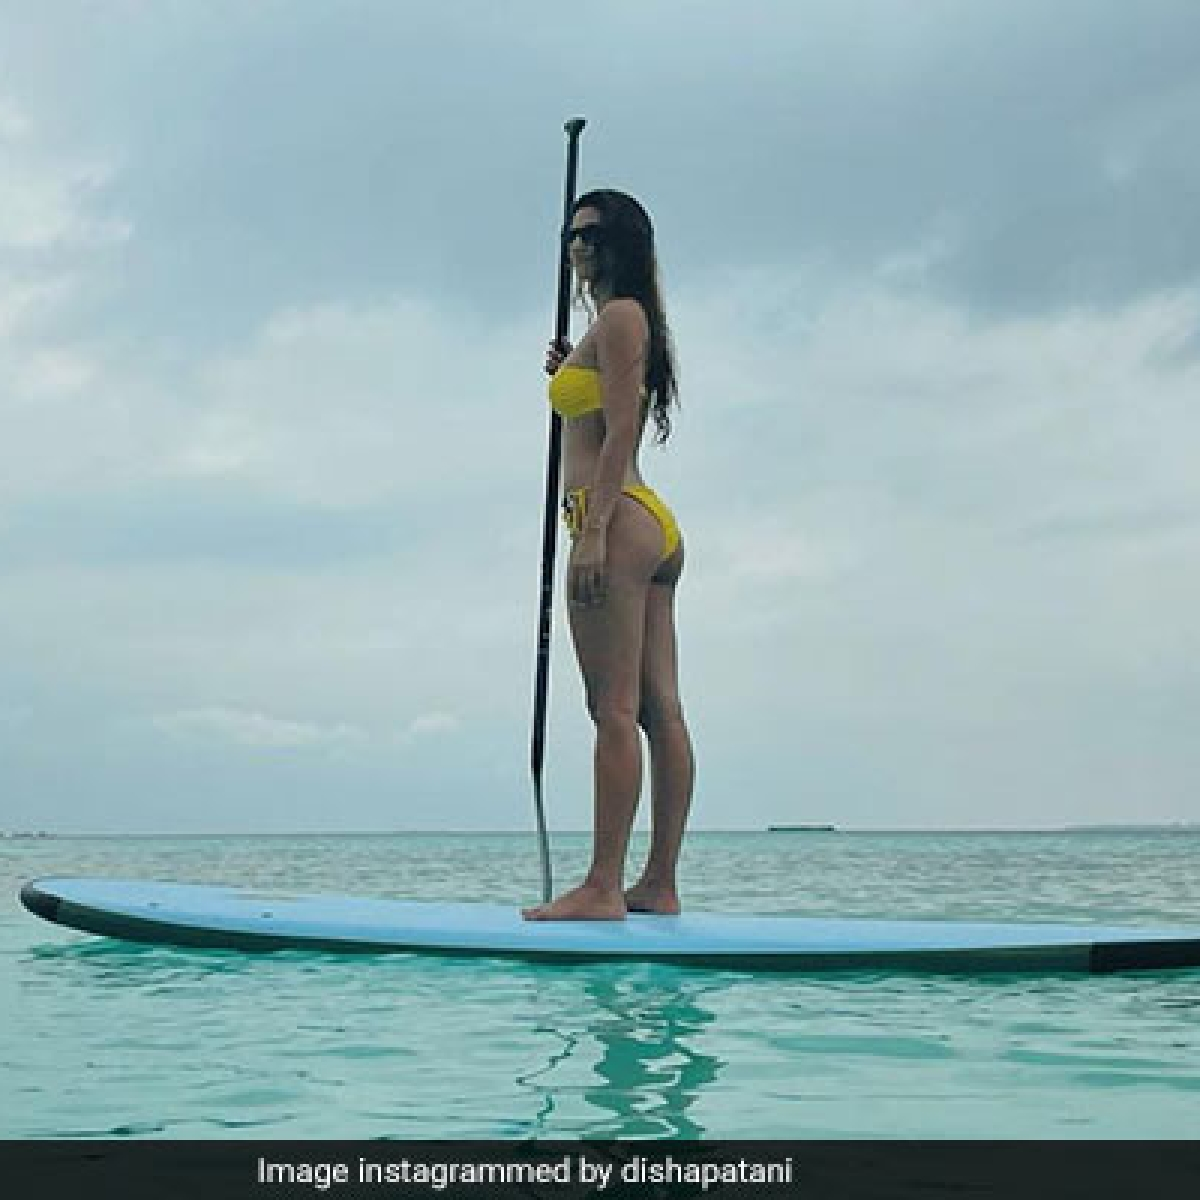 Disha Patani gives fans 'Aquaman feels' as she sizzles in a yellow bikini in latest Instagram post